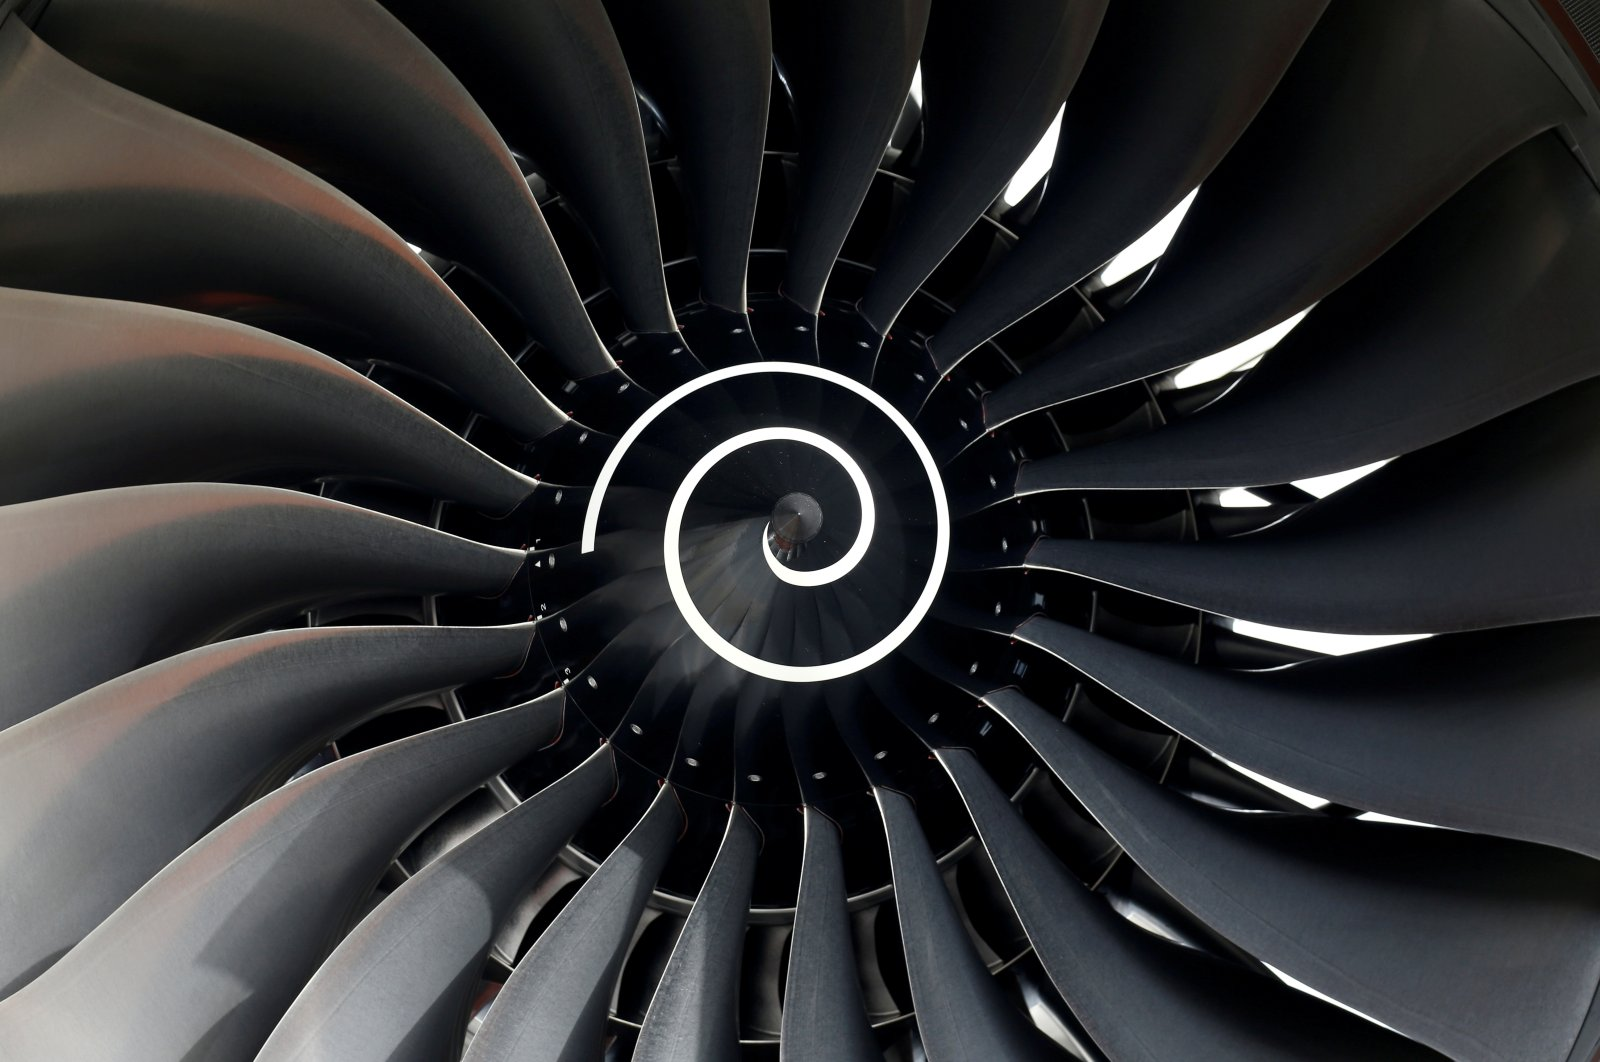 Rolls Royce engine of the first Fiji Airways A350 XWB airliner is seen at the aircraft builder's headquarters of Airbus in Colomiers near Toulouse, France, Nov. 15, 2019. (Reuters Photo)